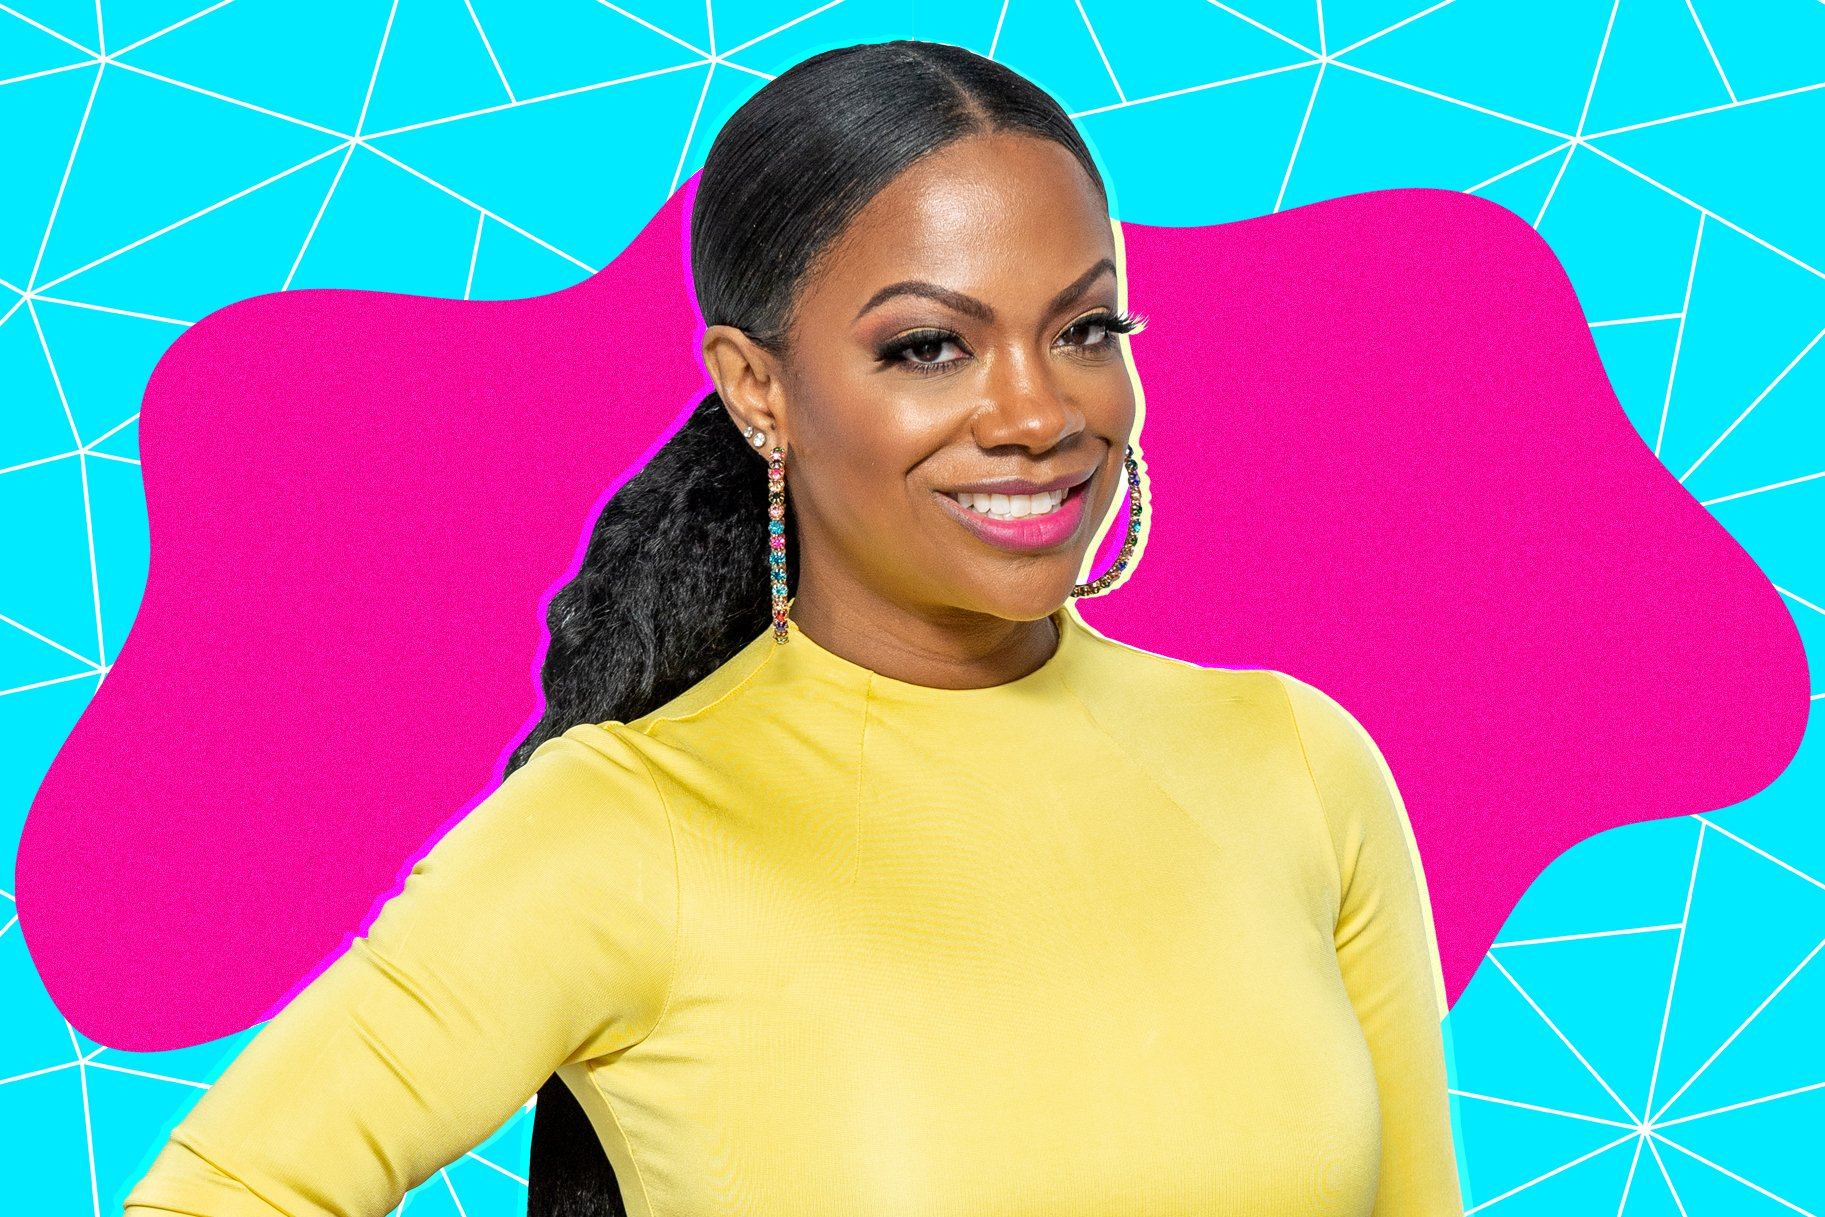 Kandi Burruss Is Pretty In Pink – Fans Say She Is Twinning With Riley Burruss